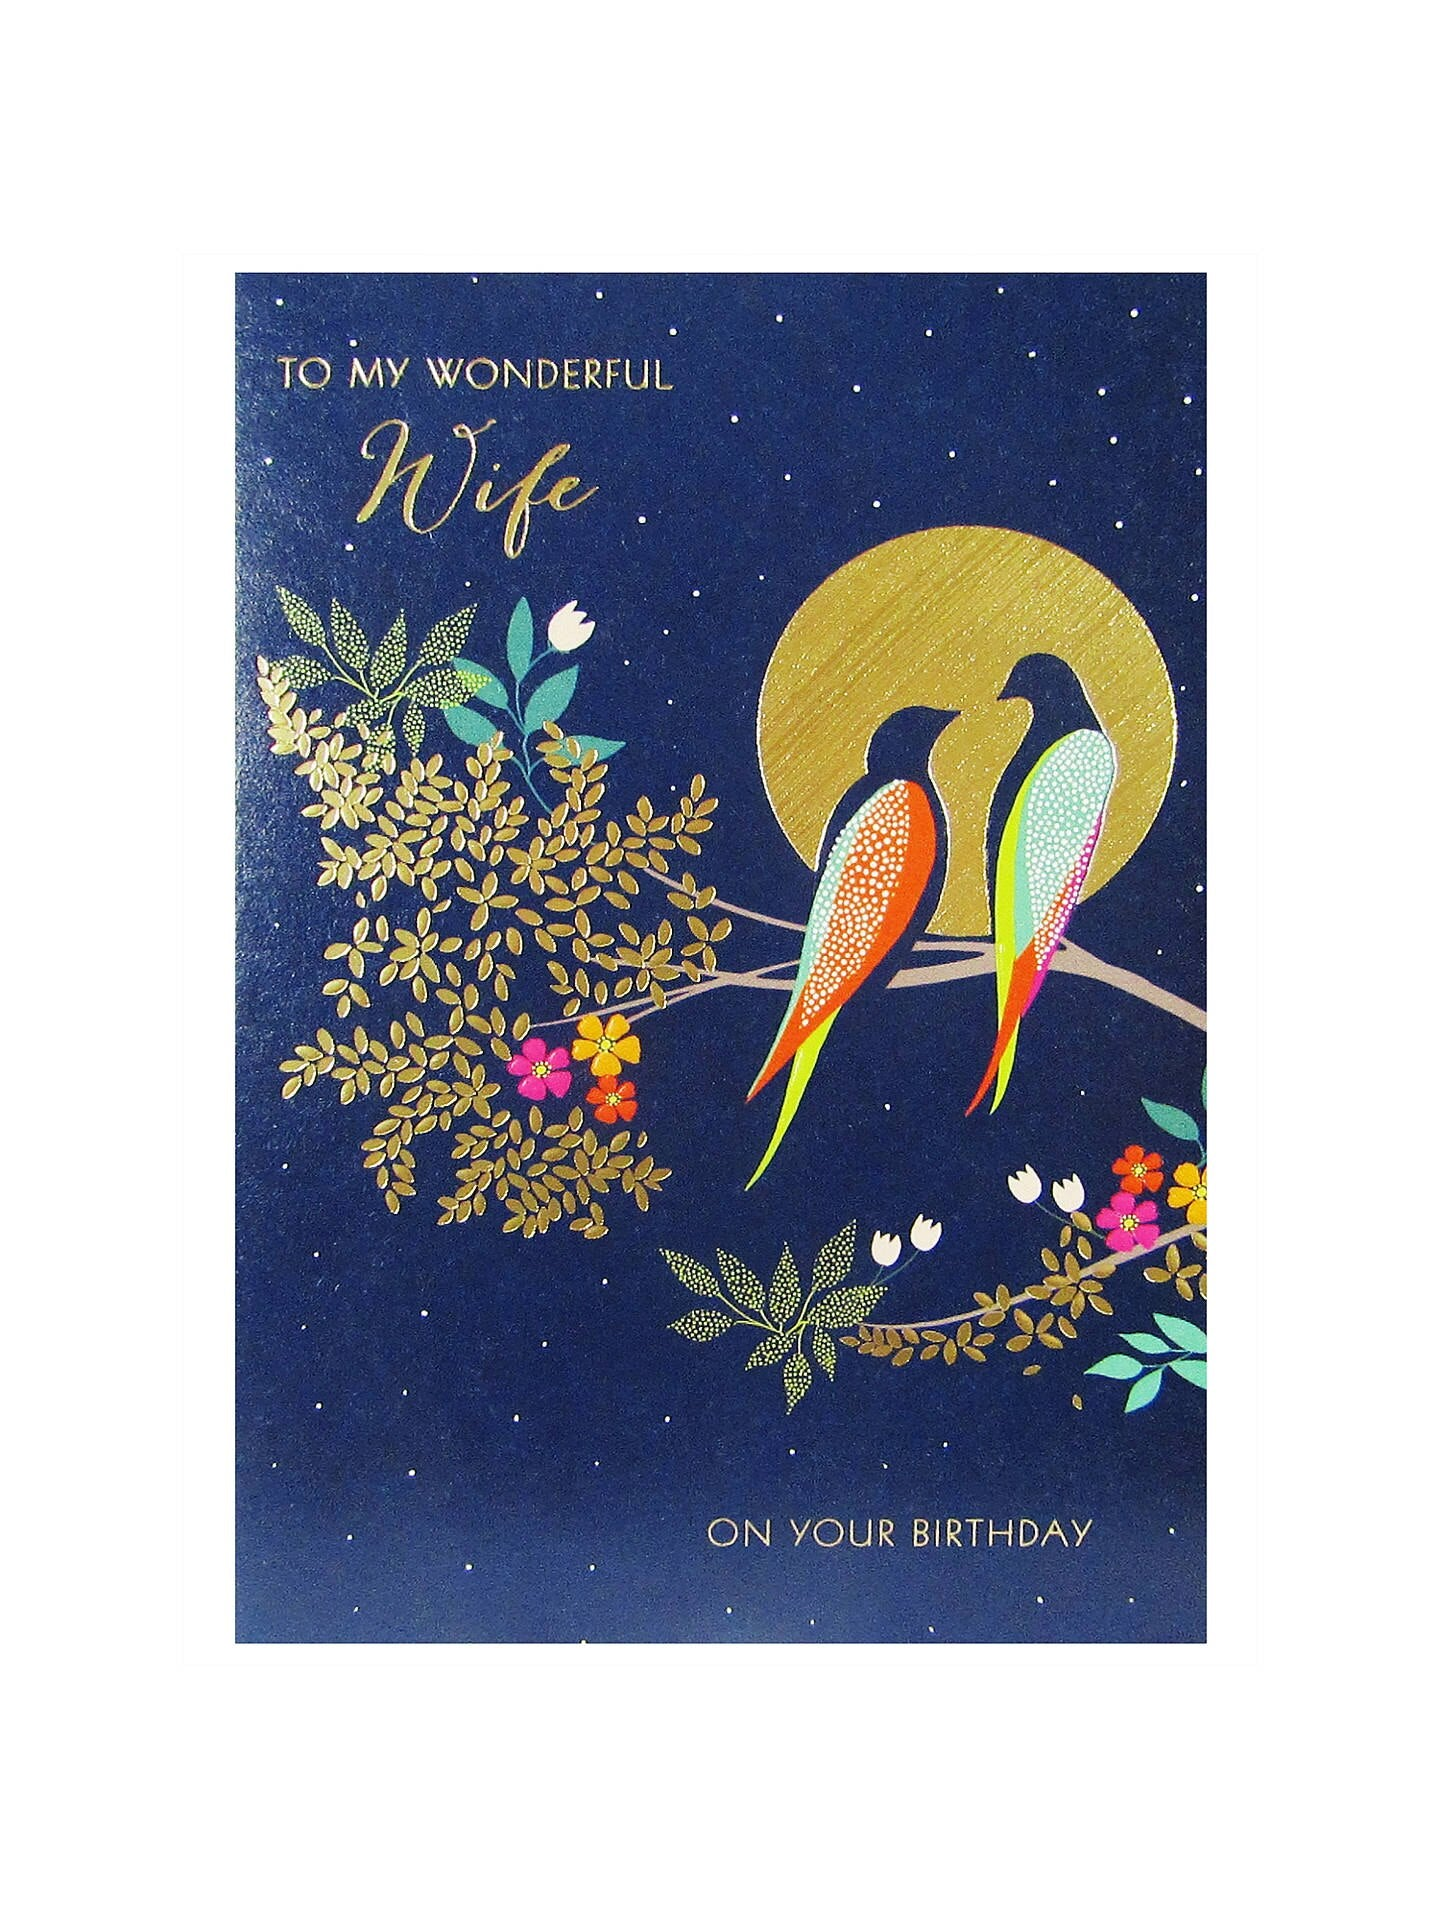 Sara Miller by The Art File - Wonderful Wife Birthday Card